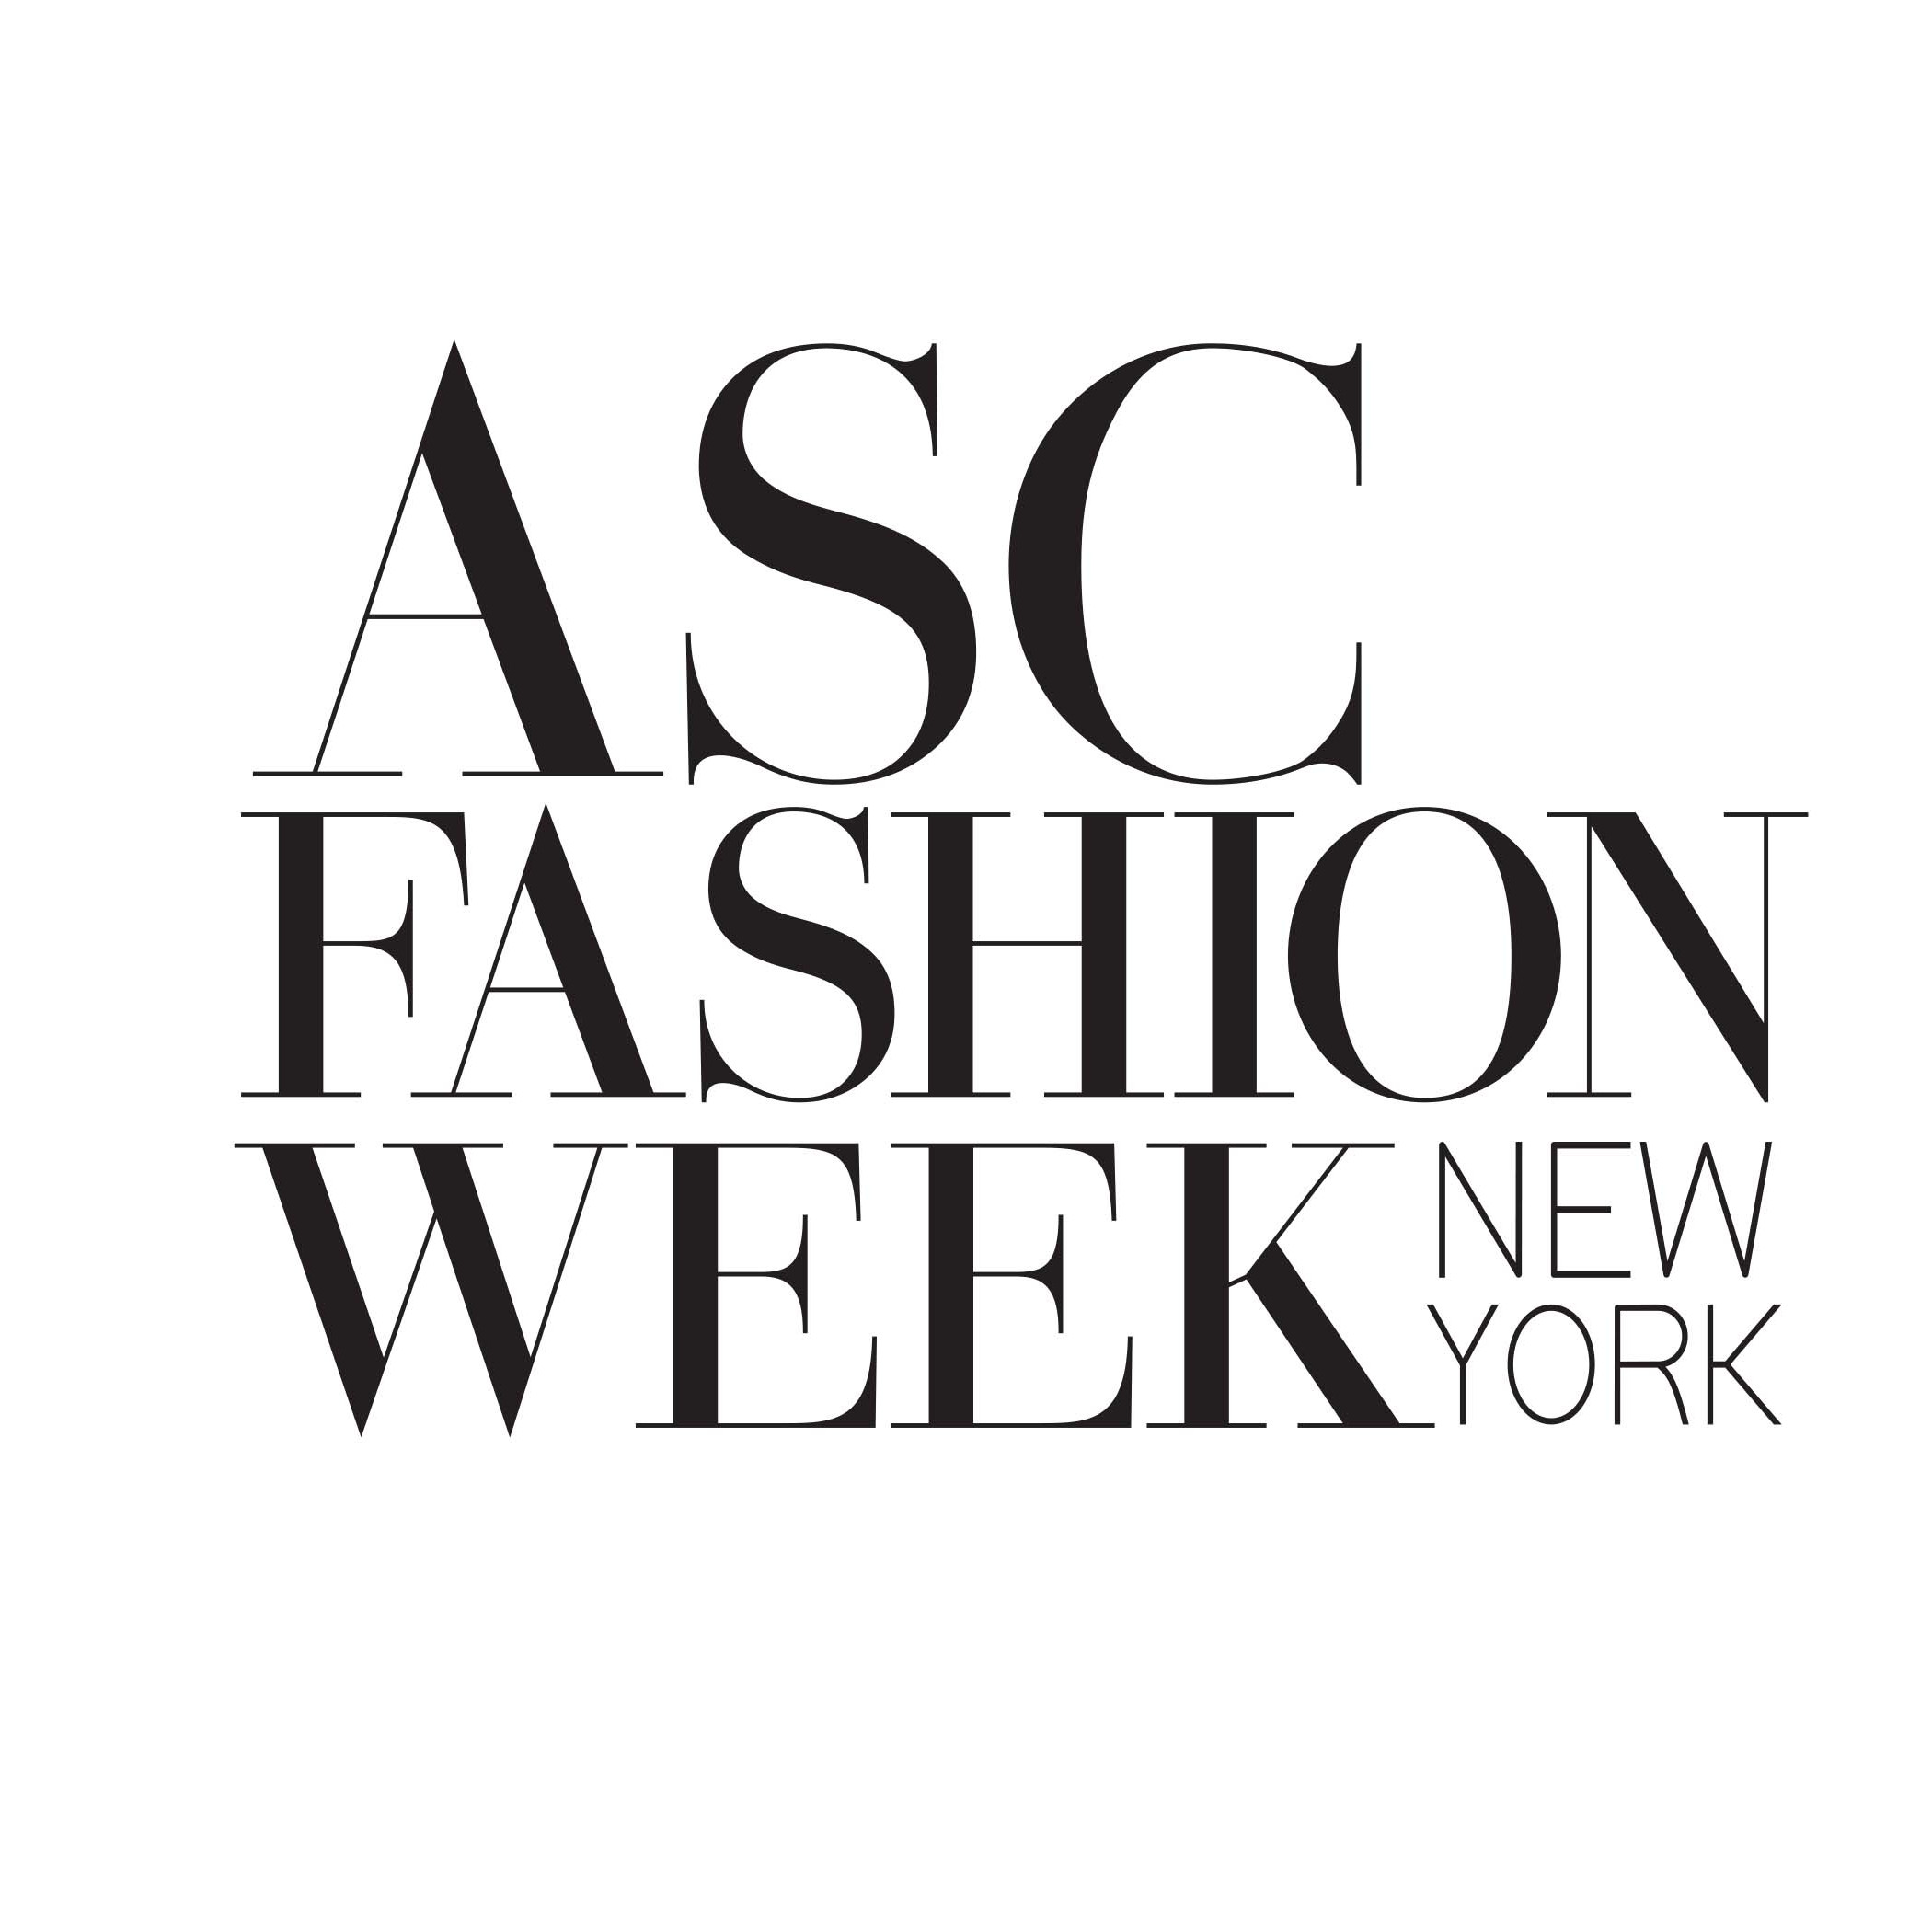 ASC Fashion Week Feb 11-13, 2021